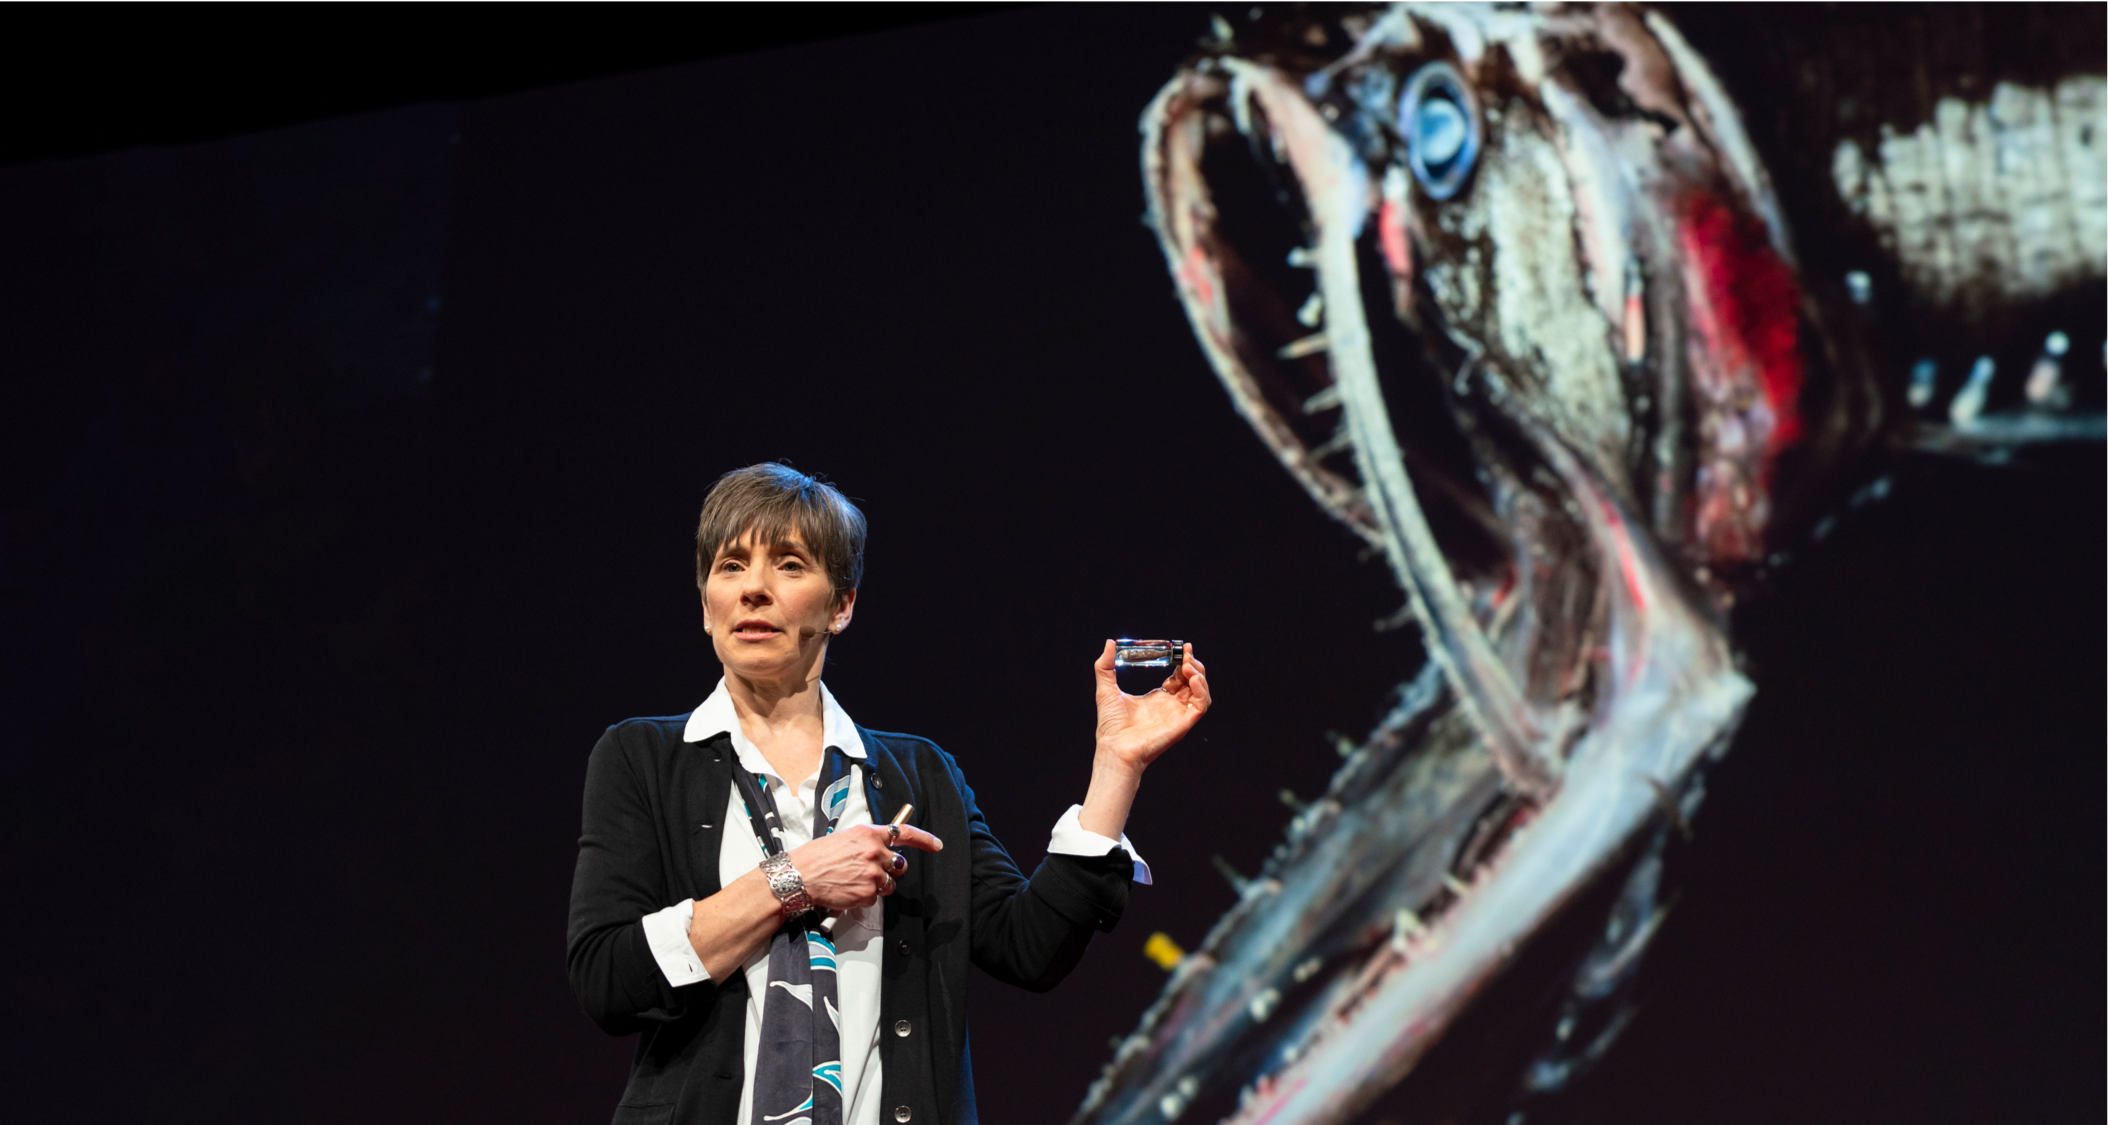 Terrifying but tiny - Projected on the TED stage behind Woods Hole Oceanographic's Ocean Twilight Zone Project Lead Heidi Sosik are the gaping jaws of a bristlemouth, a fish that dwells in the twilight zone. Bristlemouths may look terrifying, but a dozen of these tiny fish could fit in the vial she holds in her left hand. Photo by Bret Hartman, TED.